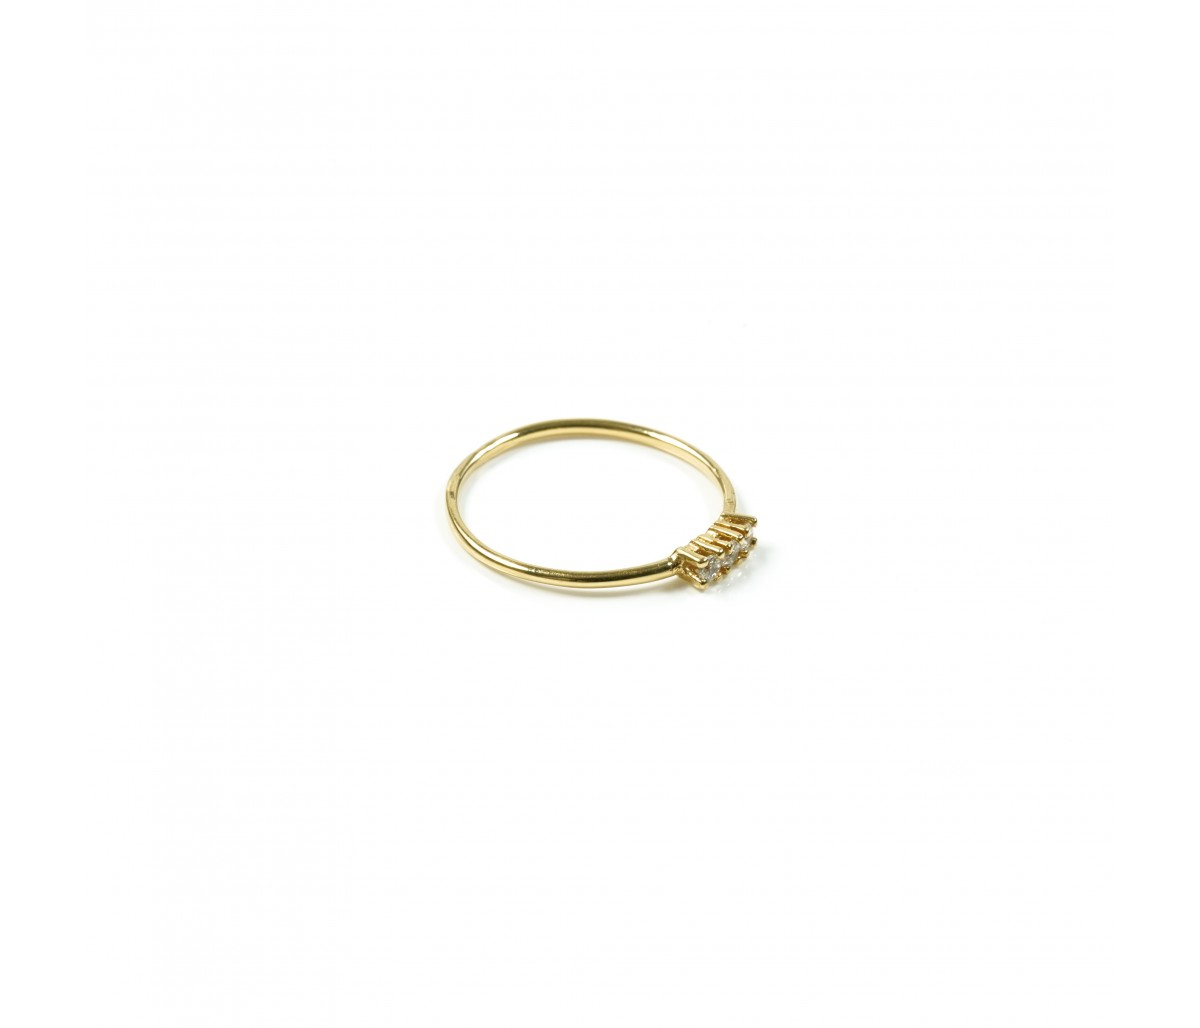 Bague Charly en or 19k